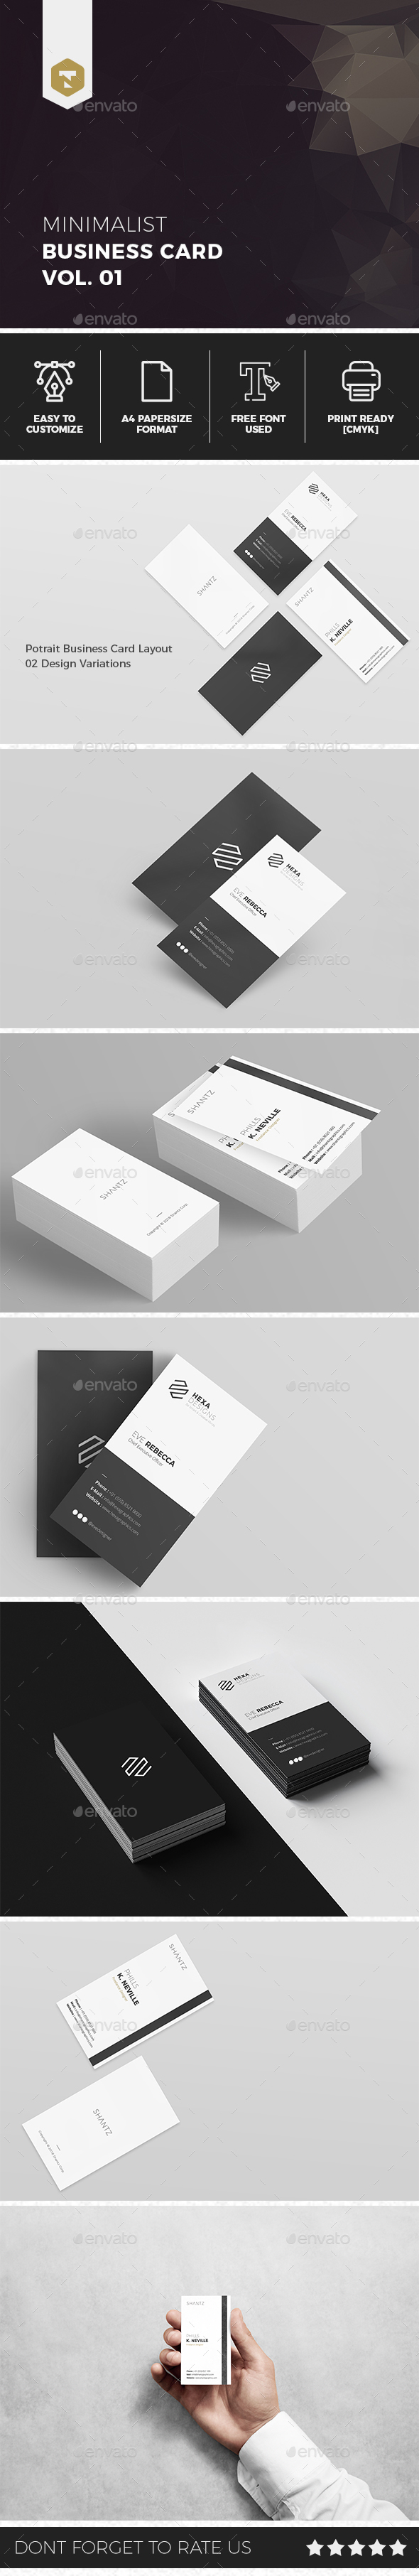 Minimalist Business Card Vol. 01 - Business Cards Print Templates